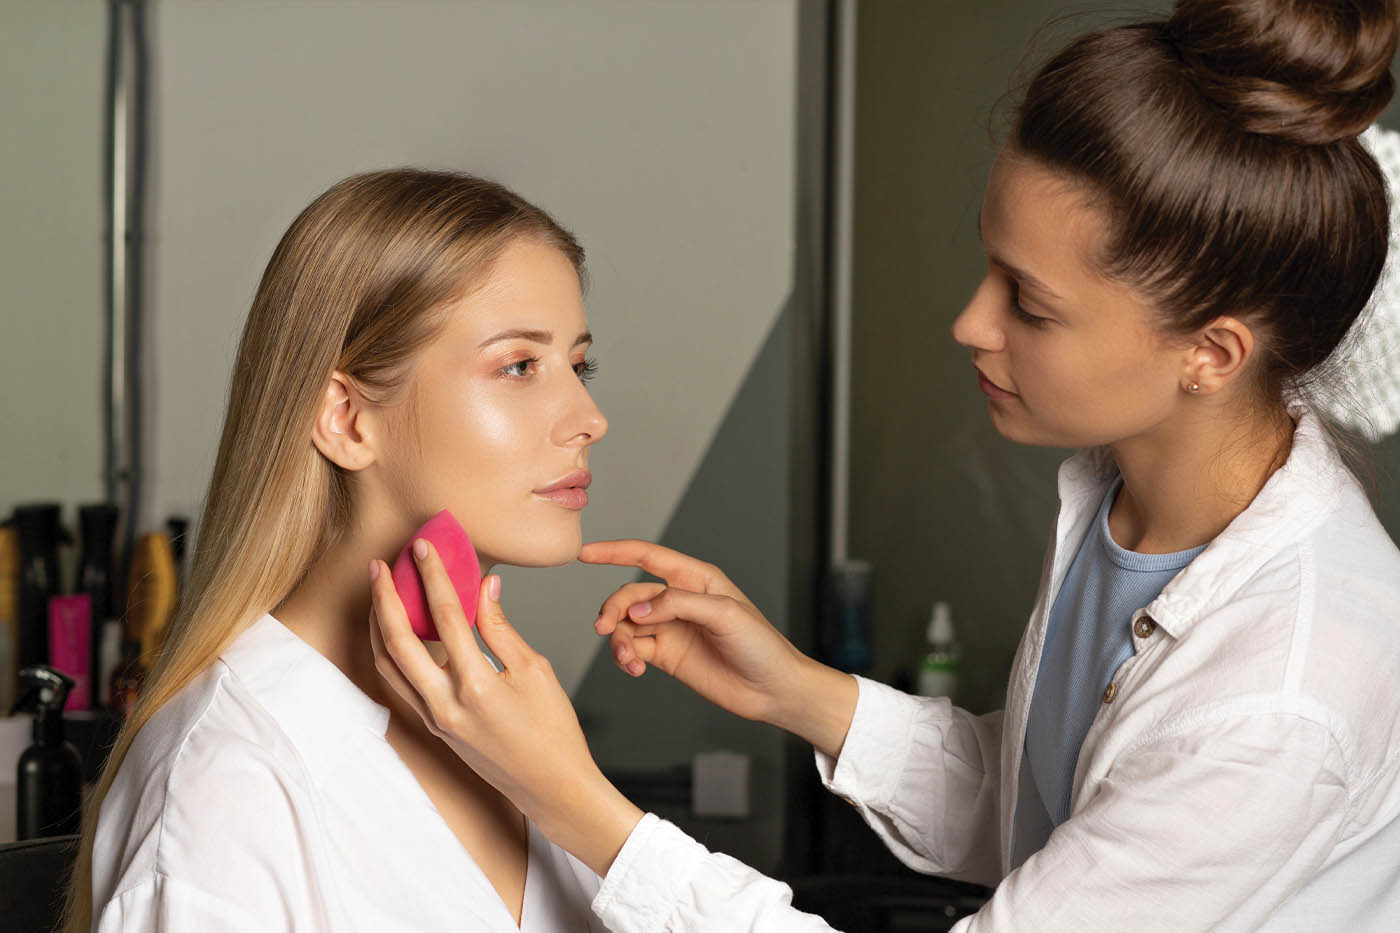 Prep Your Client's Skin Flawlessly